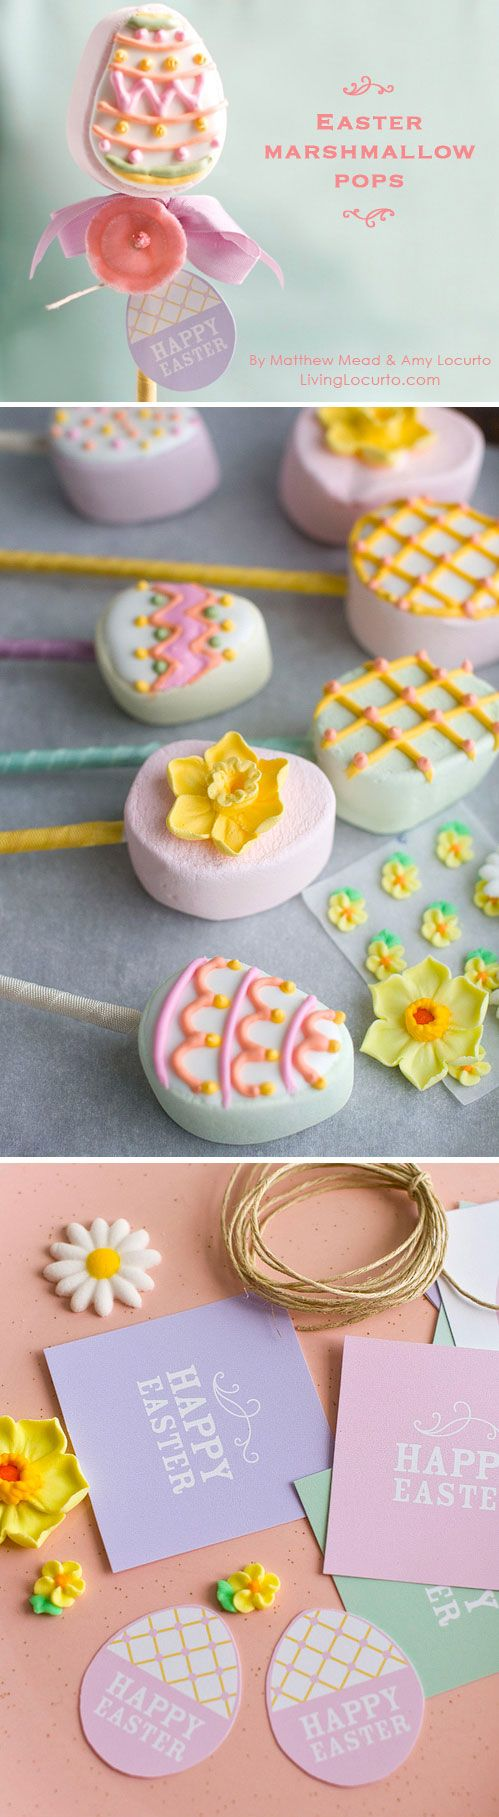 Easter Egg Marshmallow Pops & Free Printables by Amy Locurto and Matthew Mead. LivingLocurto.com